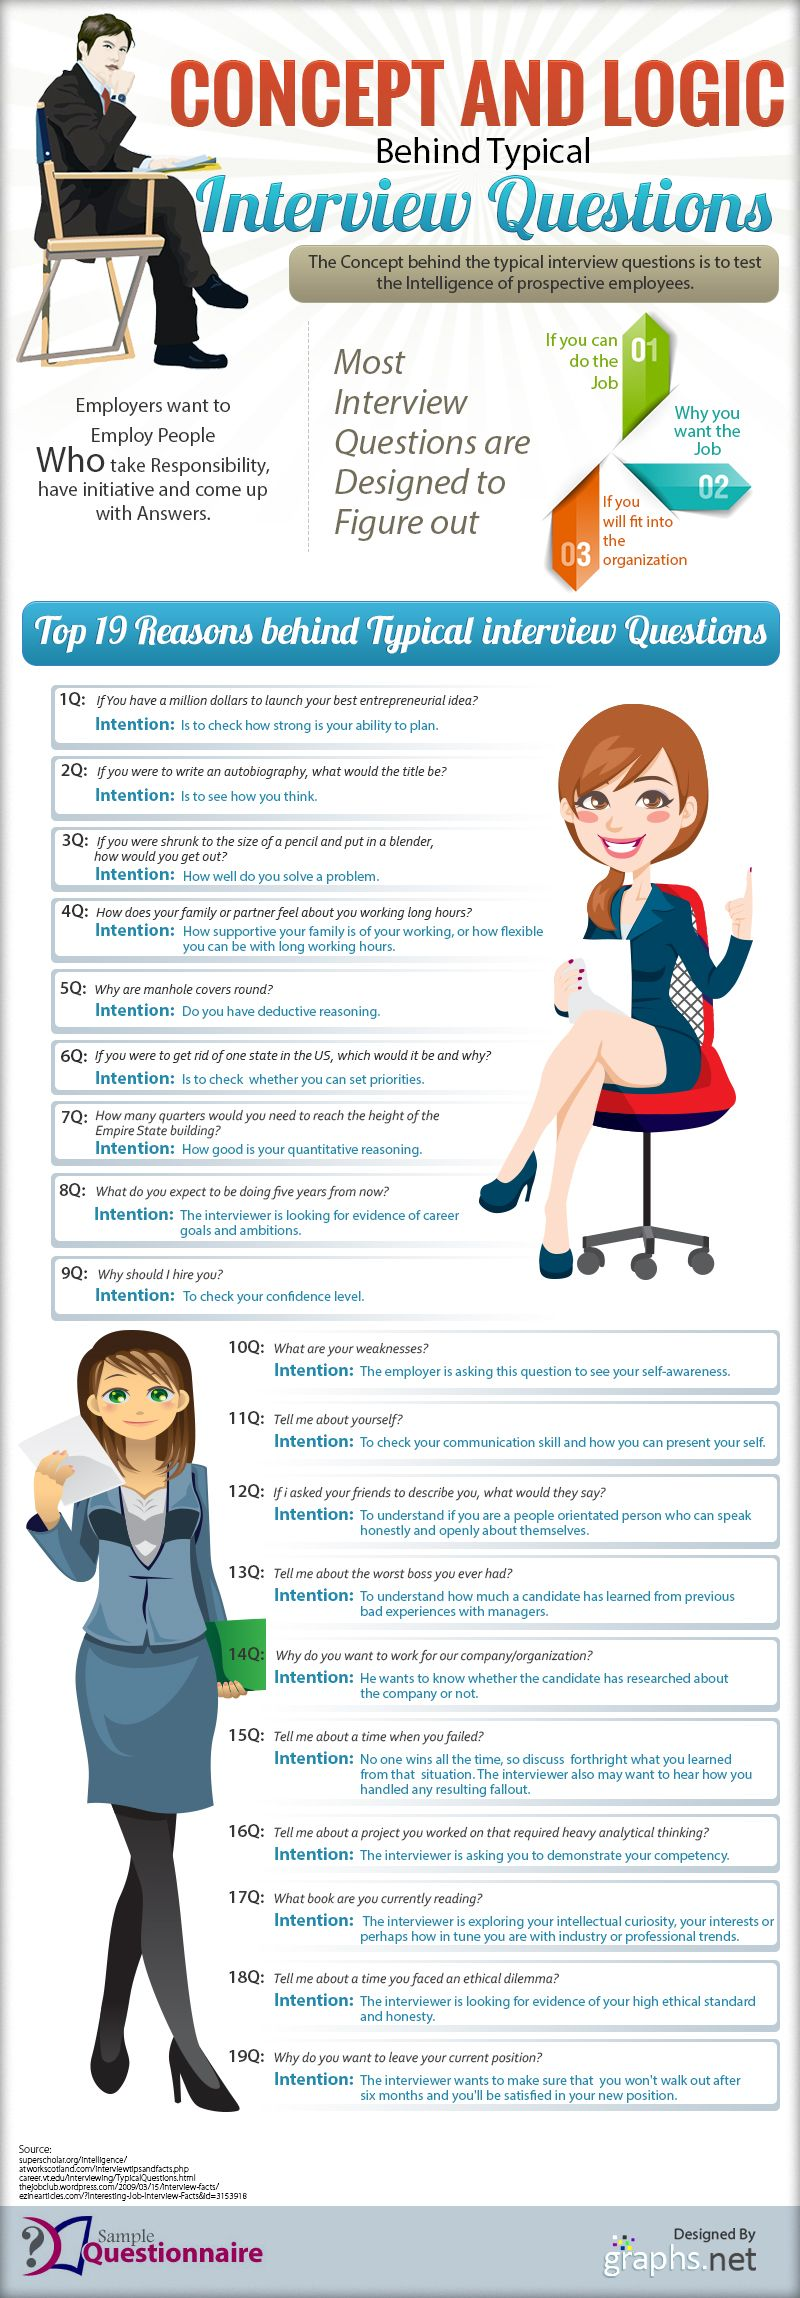 common healthcare interview questions resume and cover letter 5 common healthcare interview questions 15 common healthcare job interview questions job interview questions behavioral interview